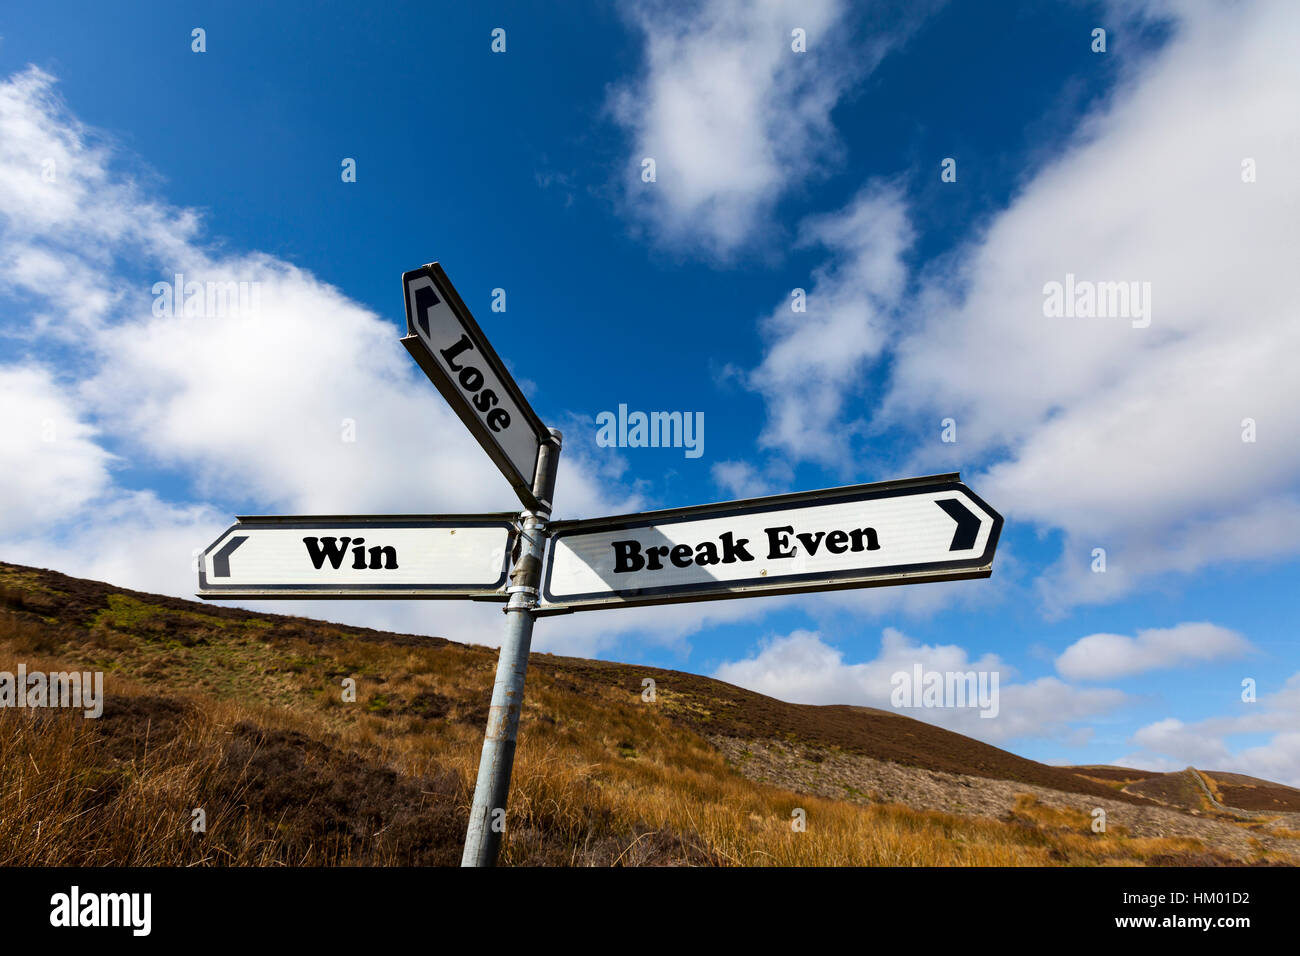 Win lose break even draw concept sign gamble gambling betting bet lifestyle choices Stock Photo